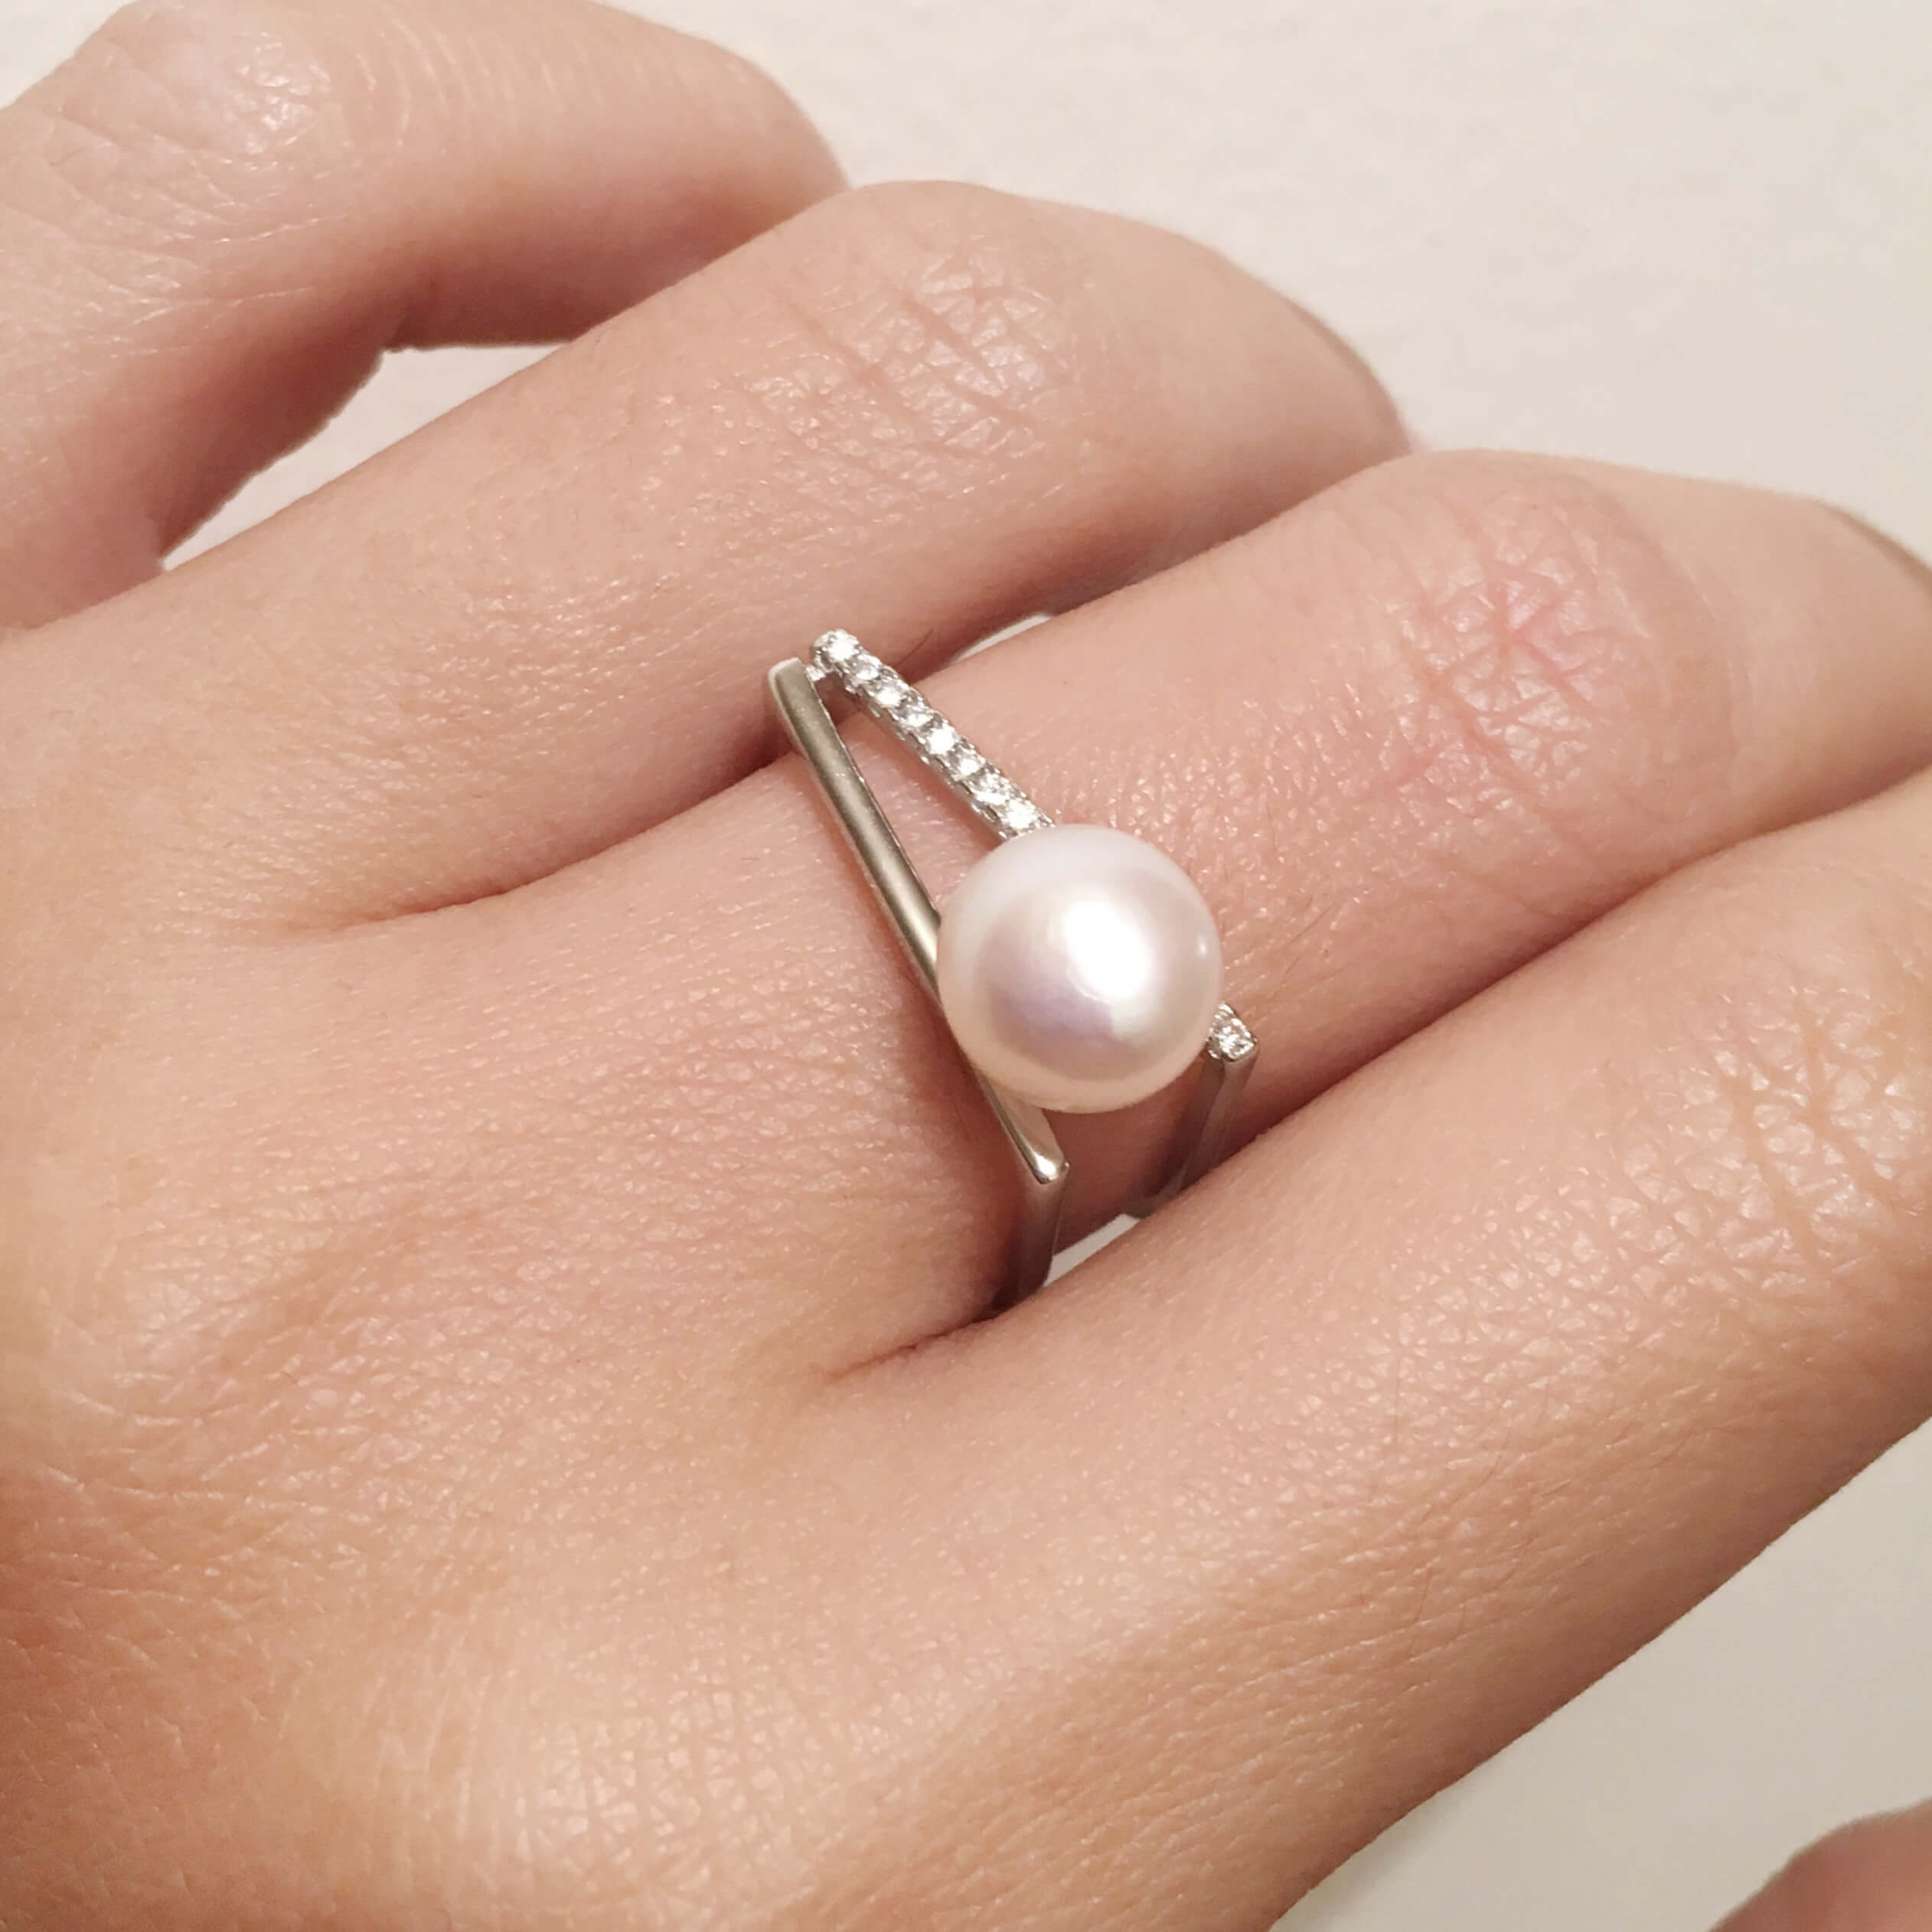 Statement pearl ring